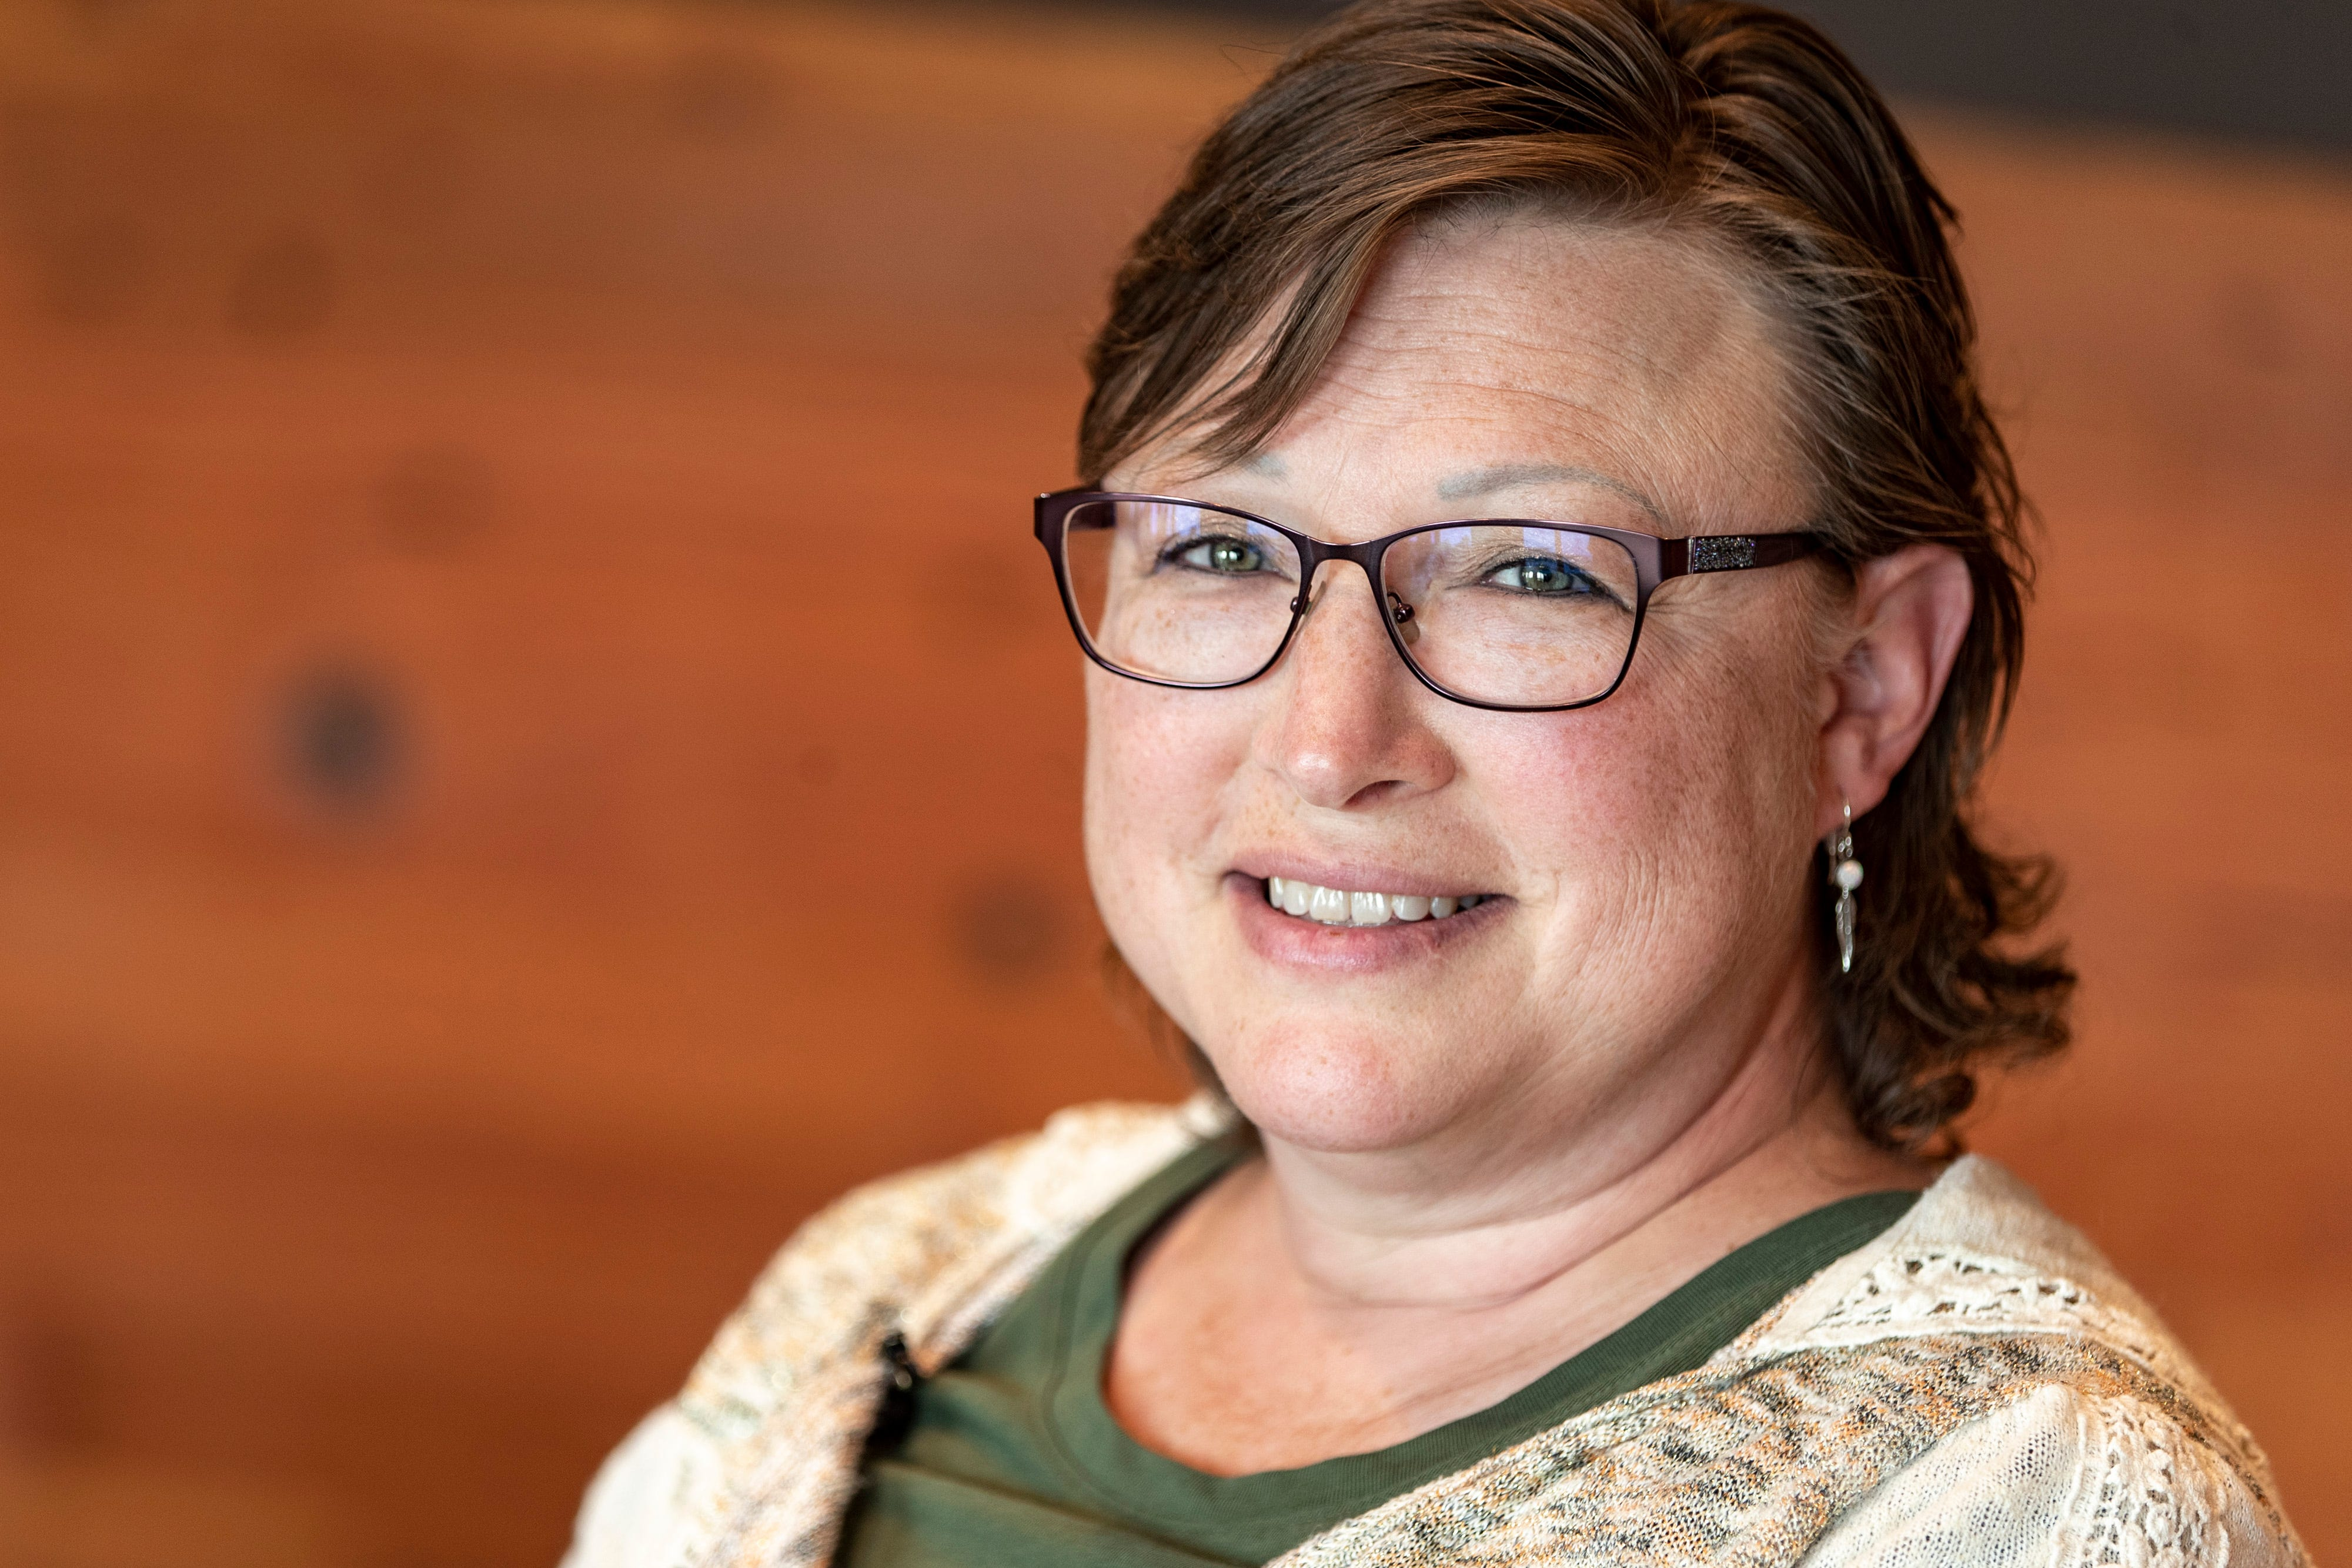 """Dr. Joy Froelich, an enrolled tribal member, is the director at the Good Road Recovery Center in Bismarck, North Dakota founded by the MHA Nation. It focuses on culture as a powerful tool in recovery. """"We are trying to bring some identity to them,"""" the doctor said. """"It helps them center."""""""